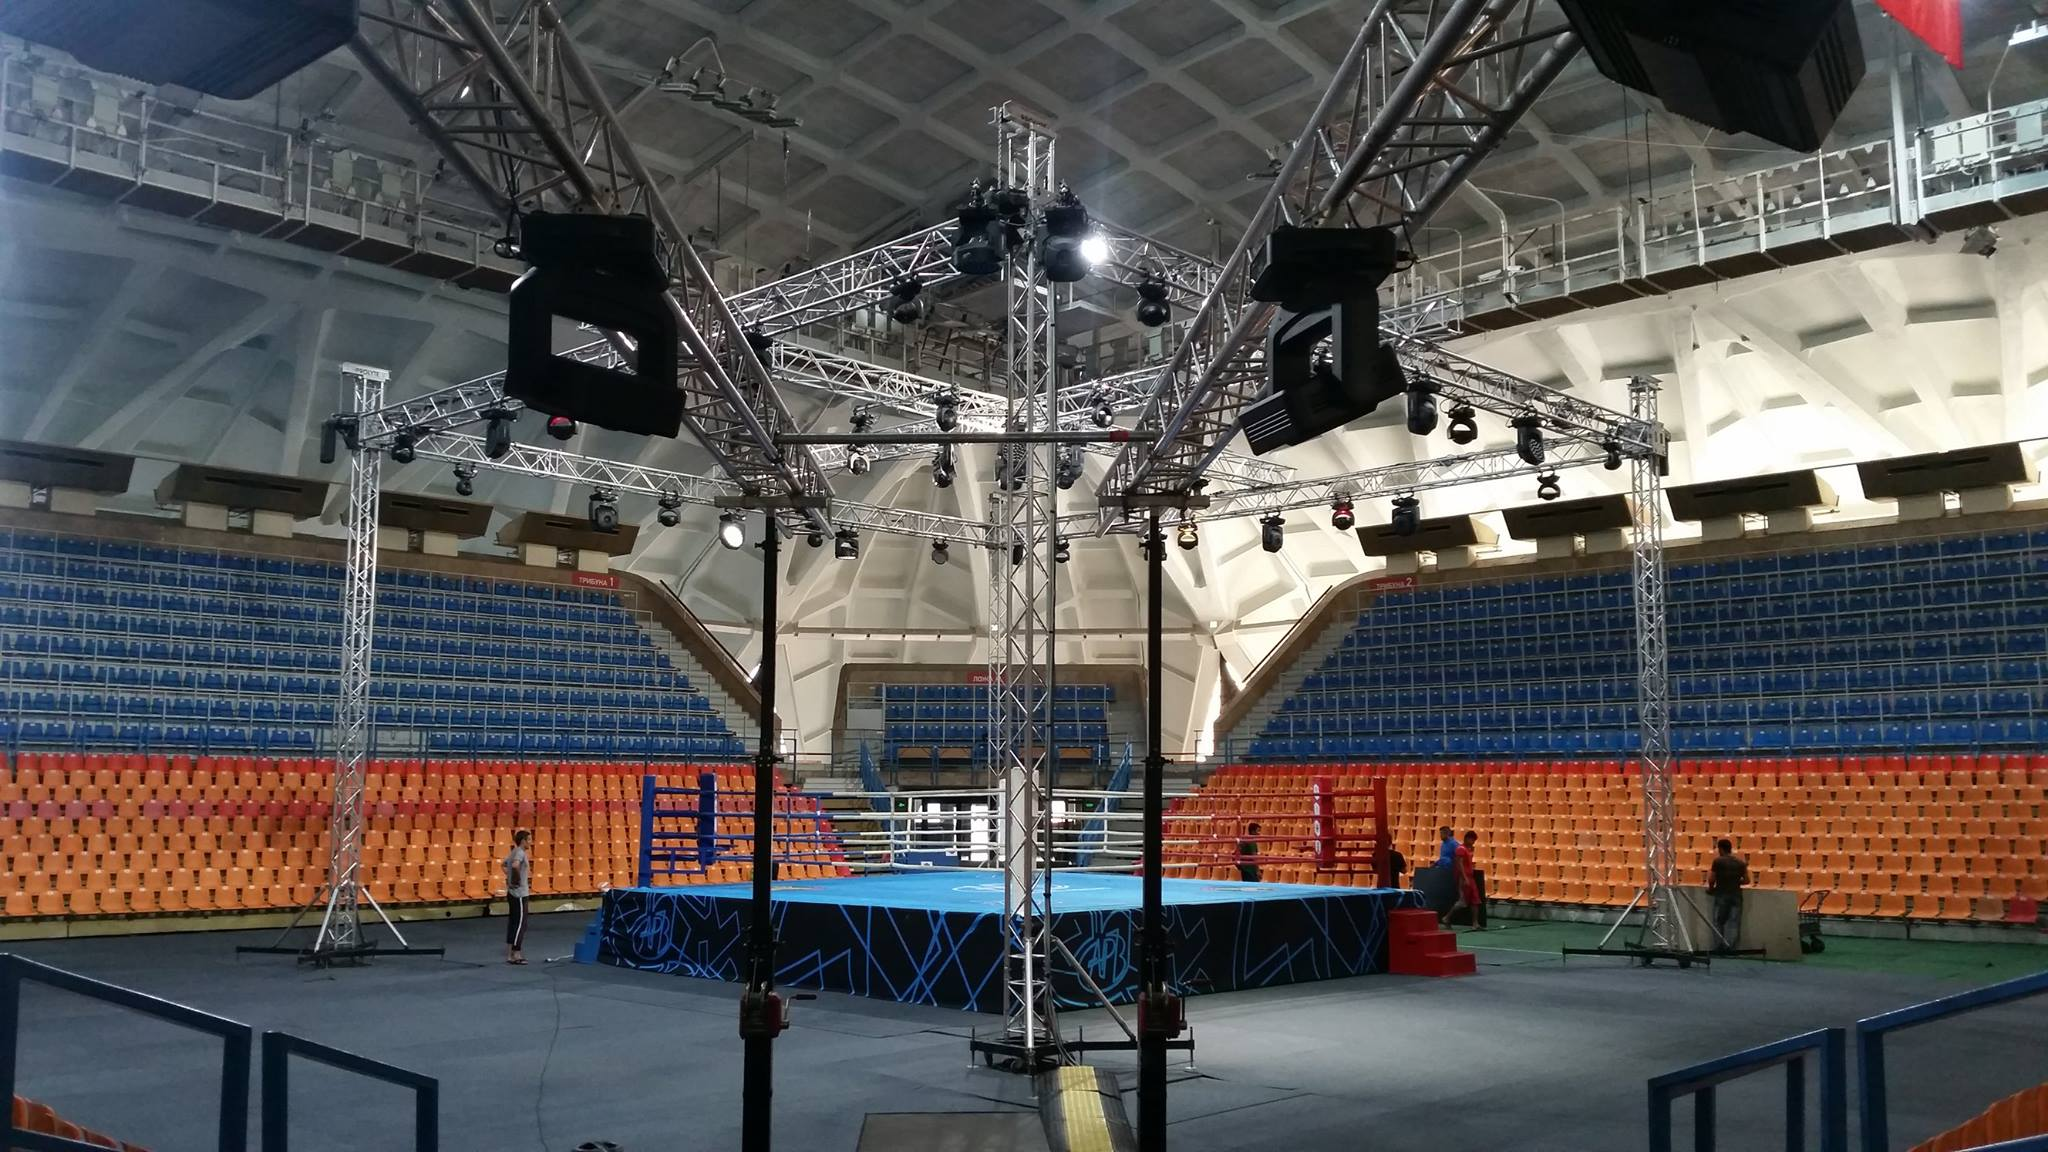 Boxing ring @ Moscow (Russia)